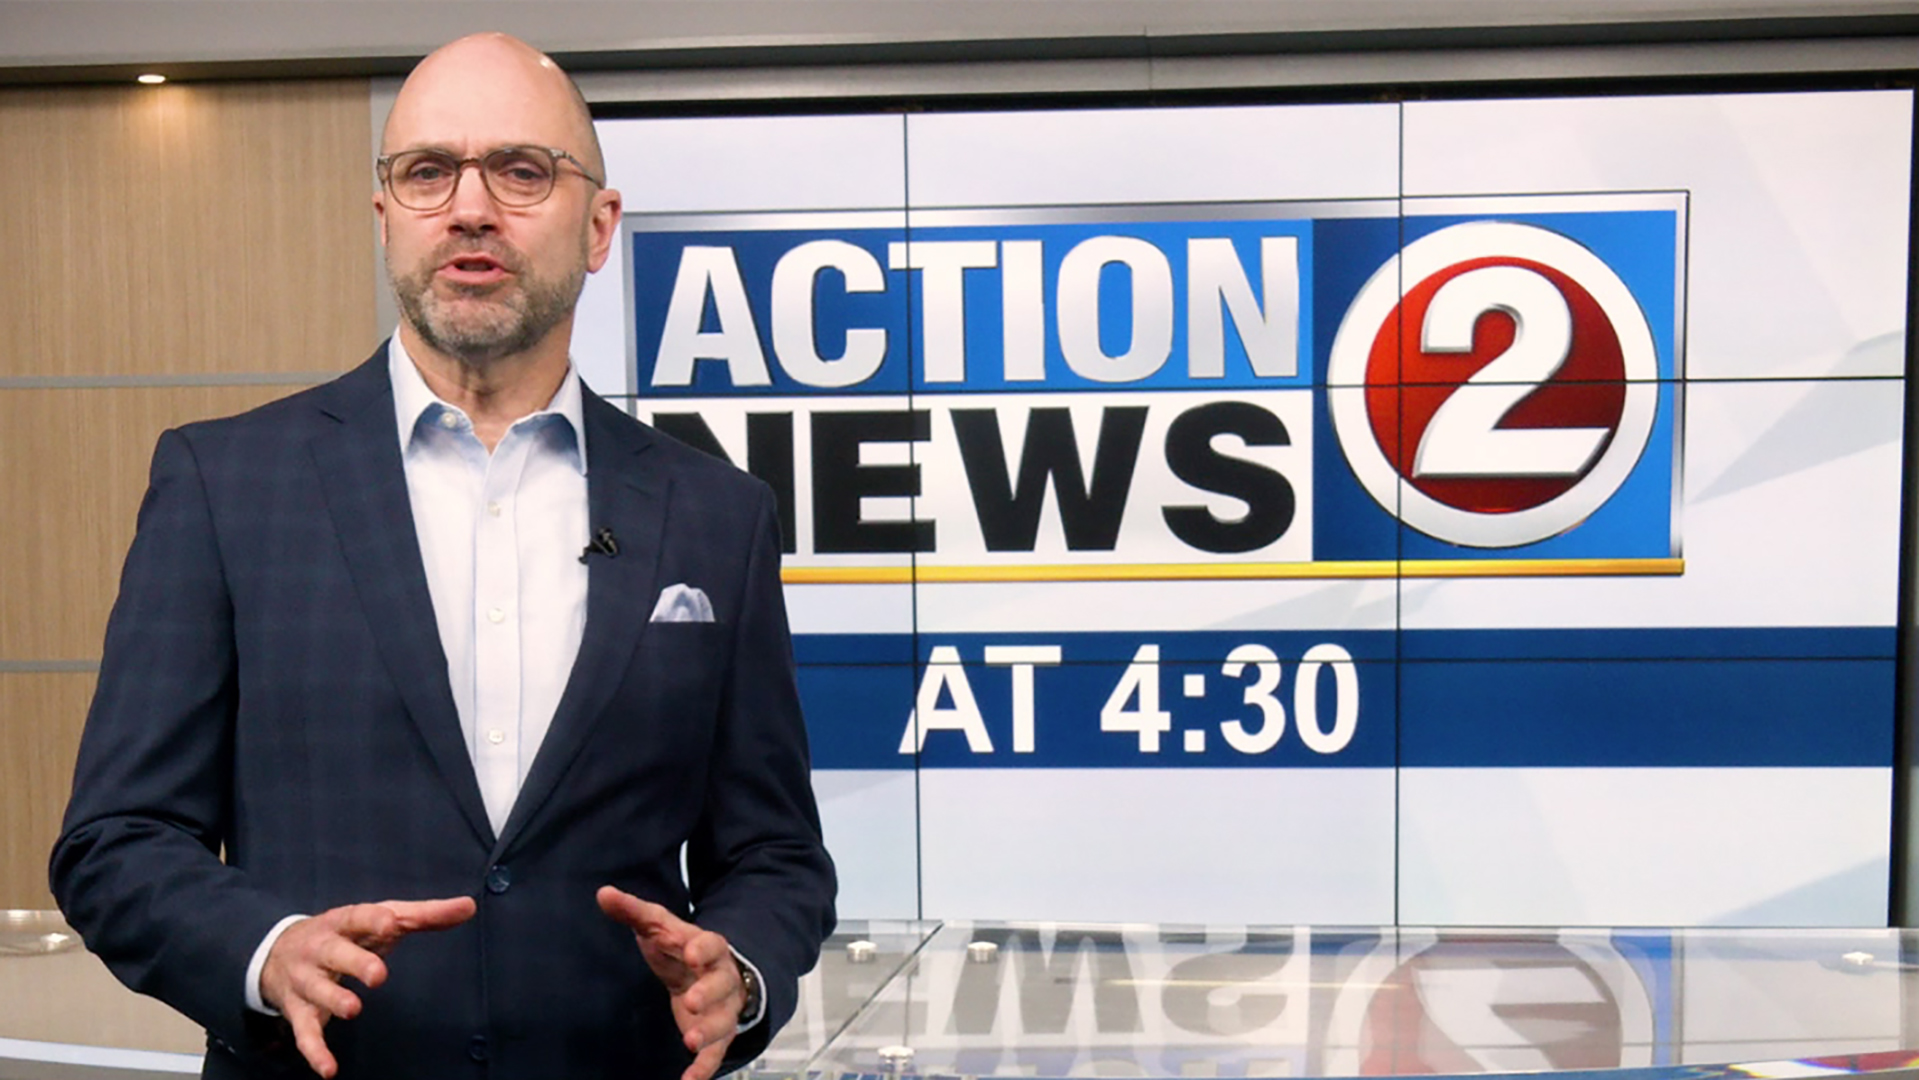 Chris Roth on the set of the WBAY 4:30 show